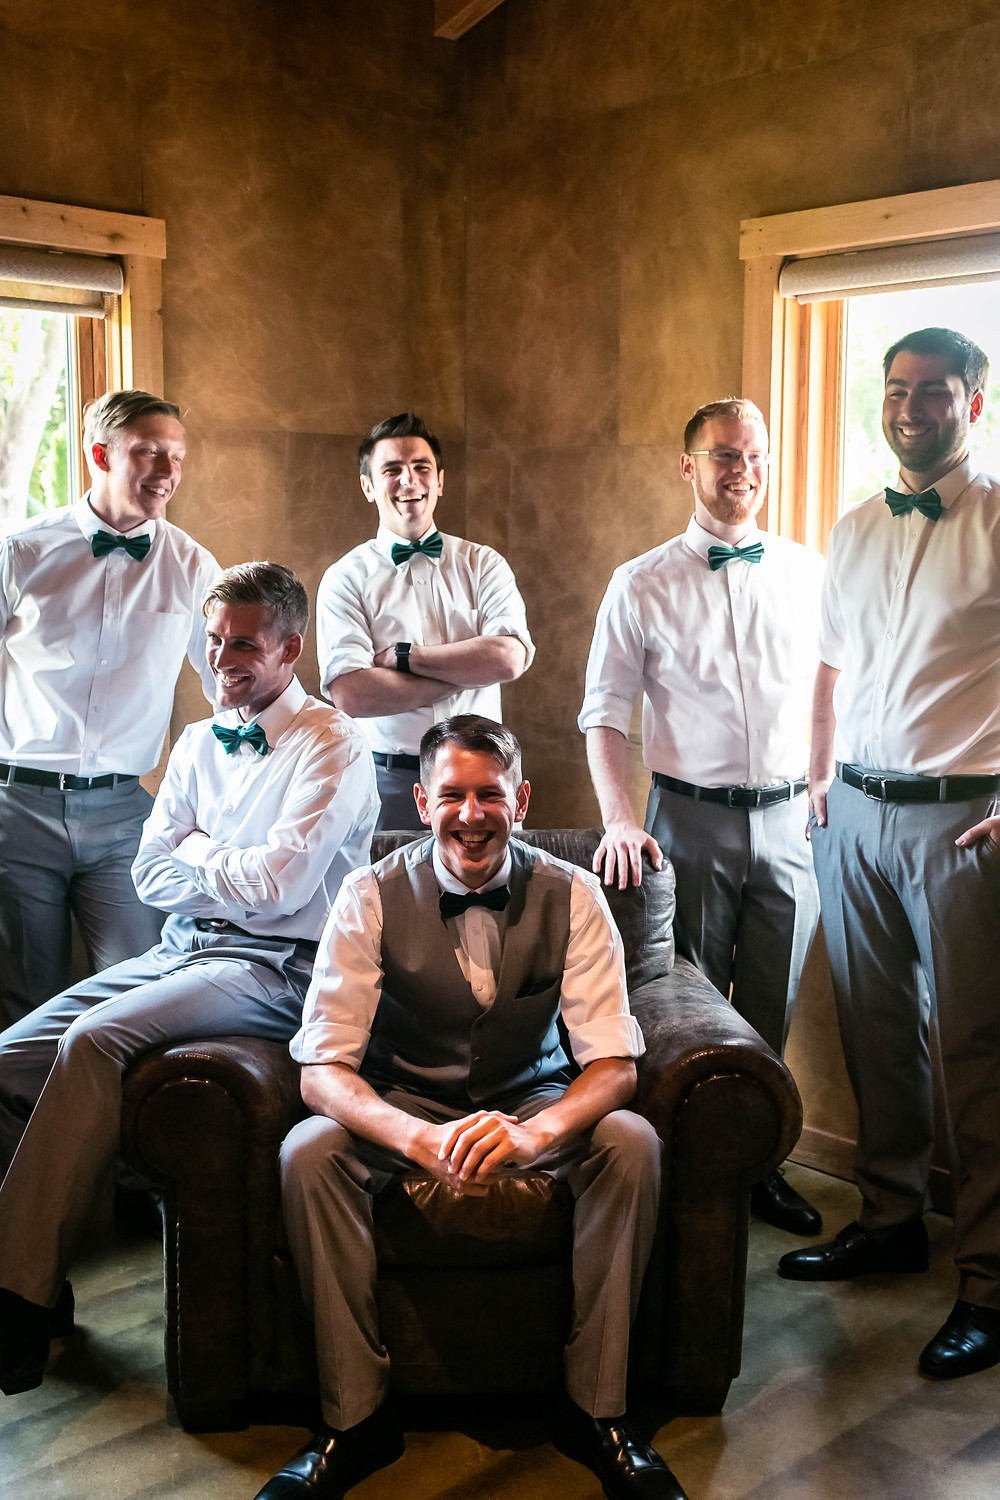 Groom surrounded by groomsmen at Sycamore Farm